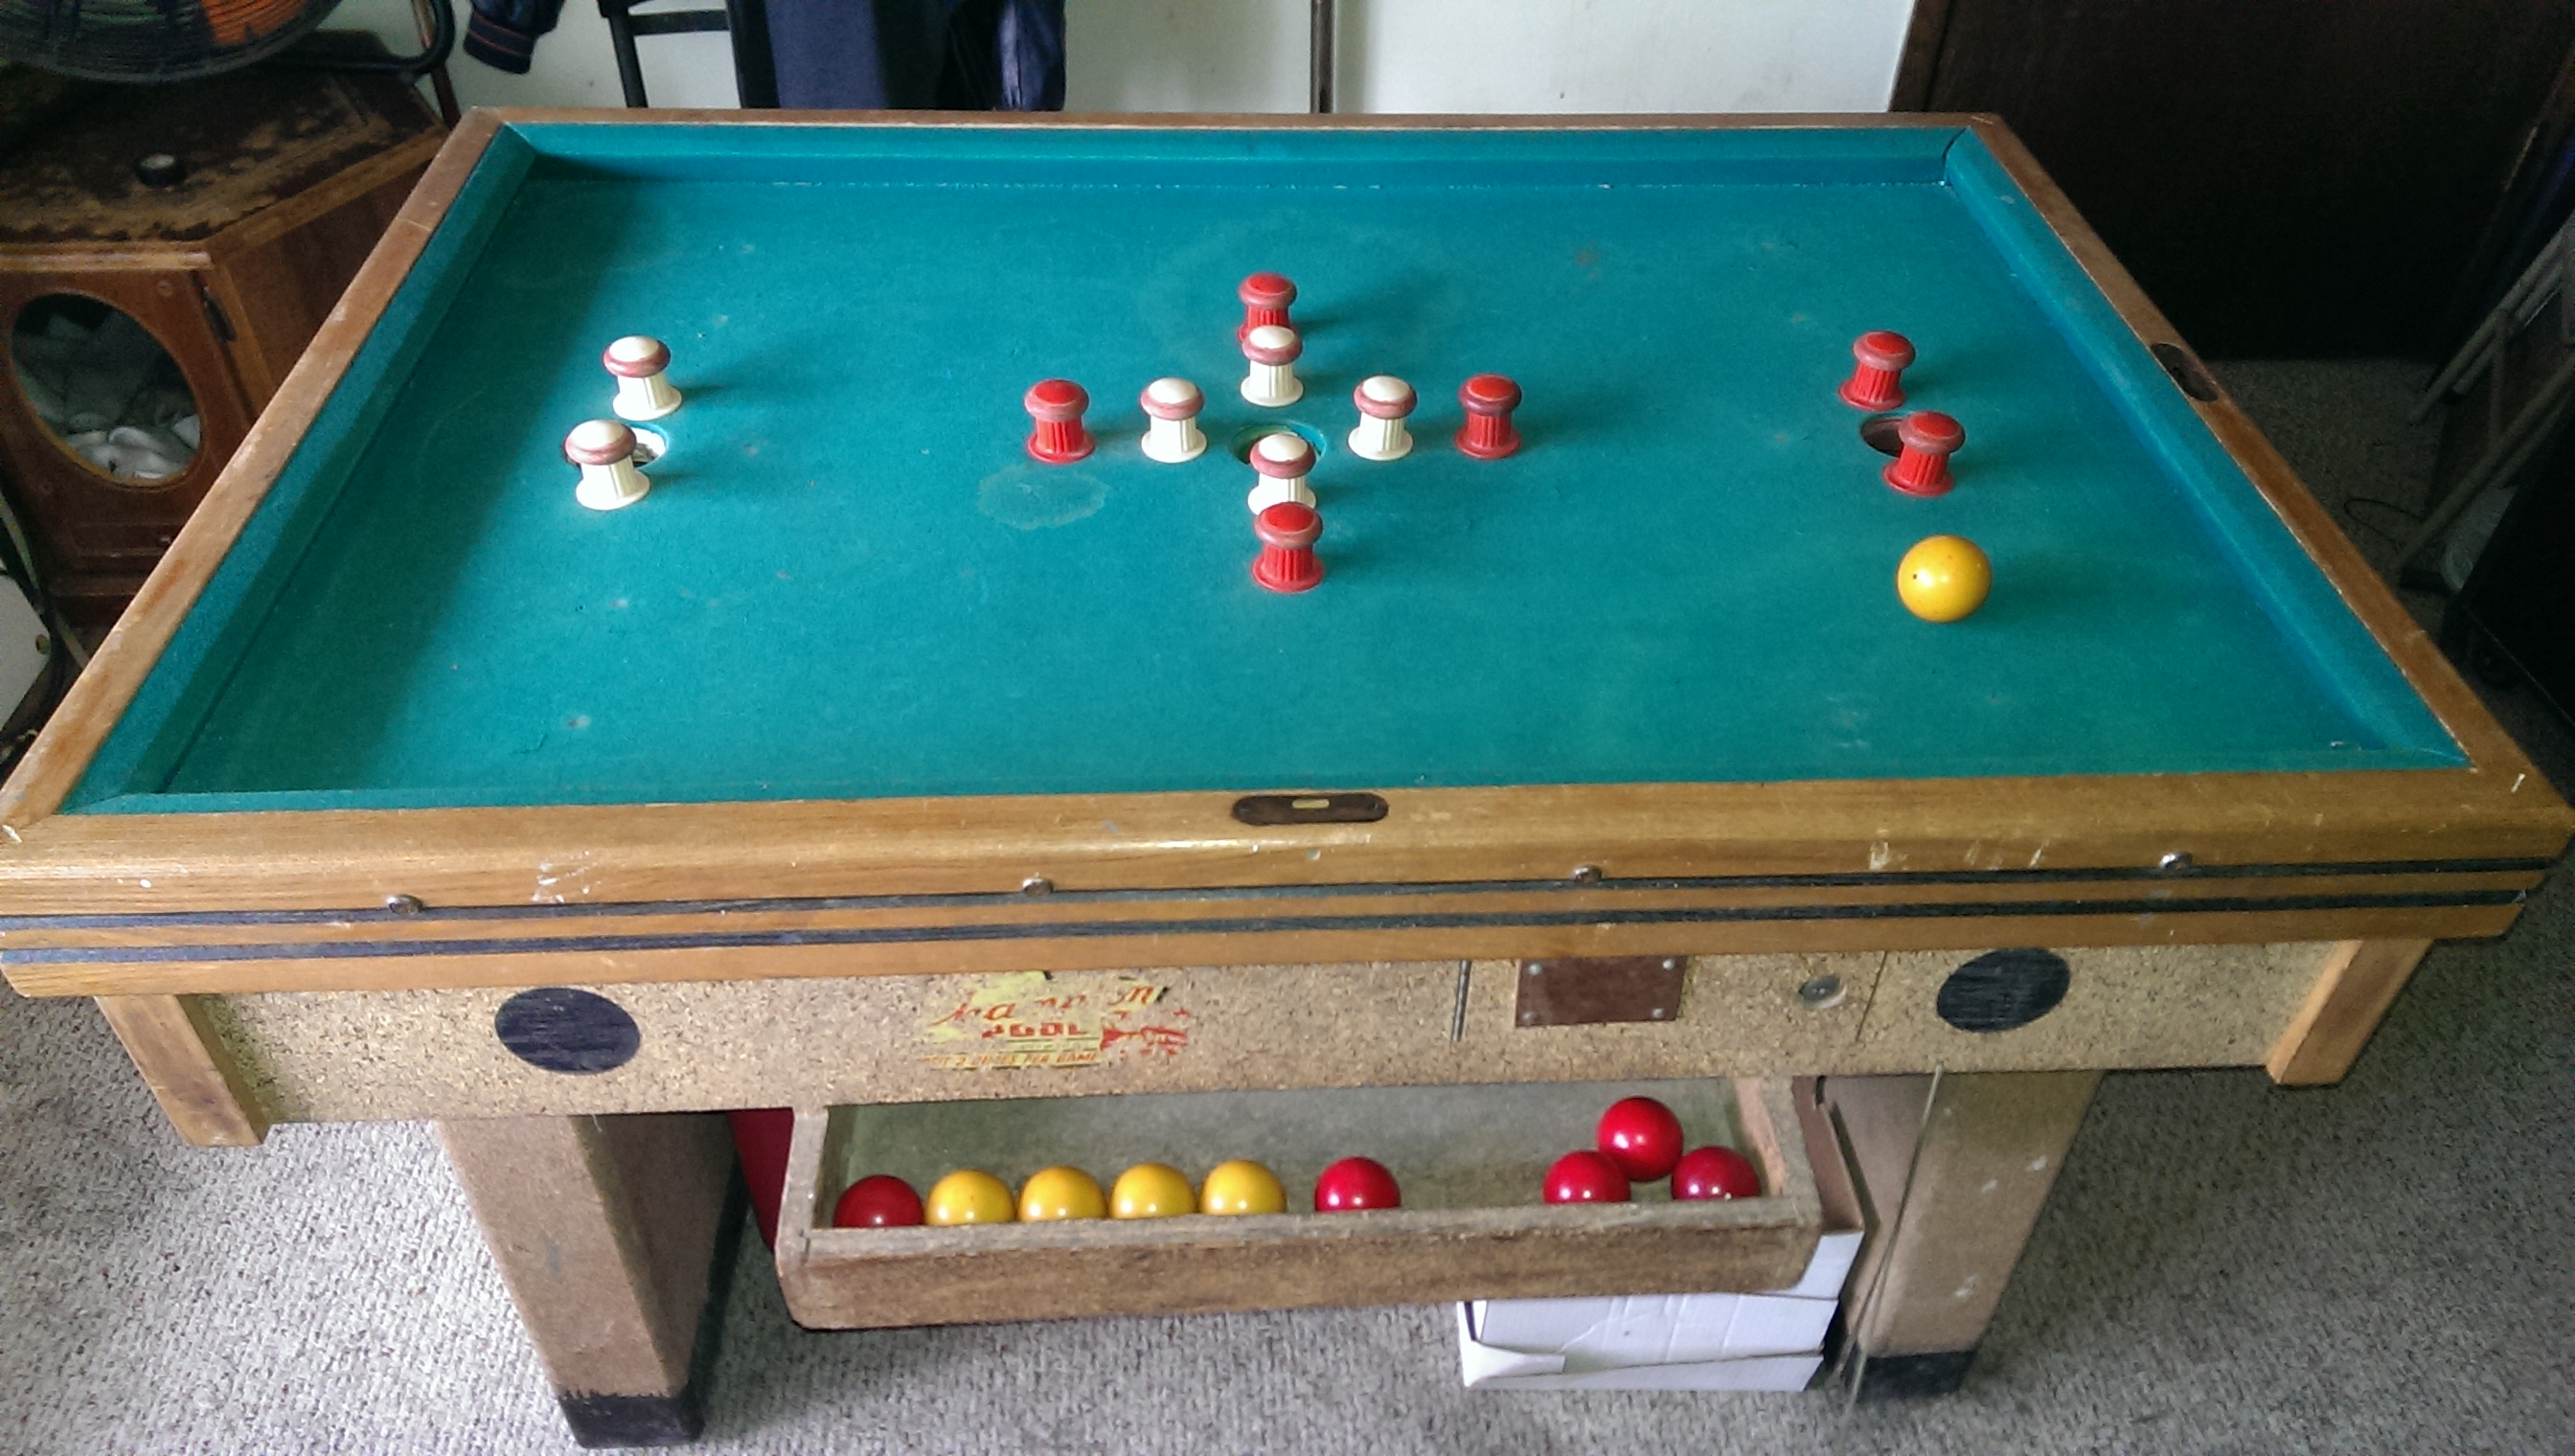 Coin operated bumper pool table what do i have - Bumper pool bumpers ...